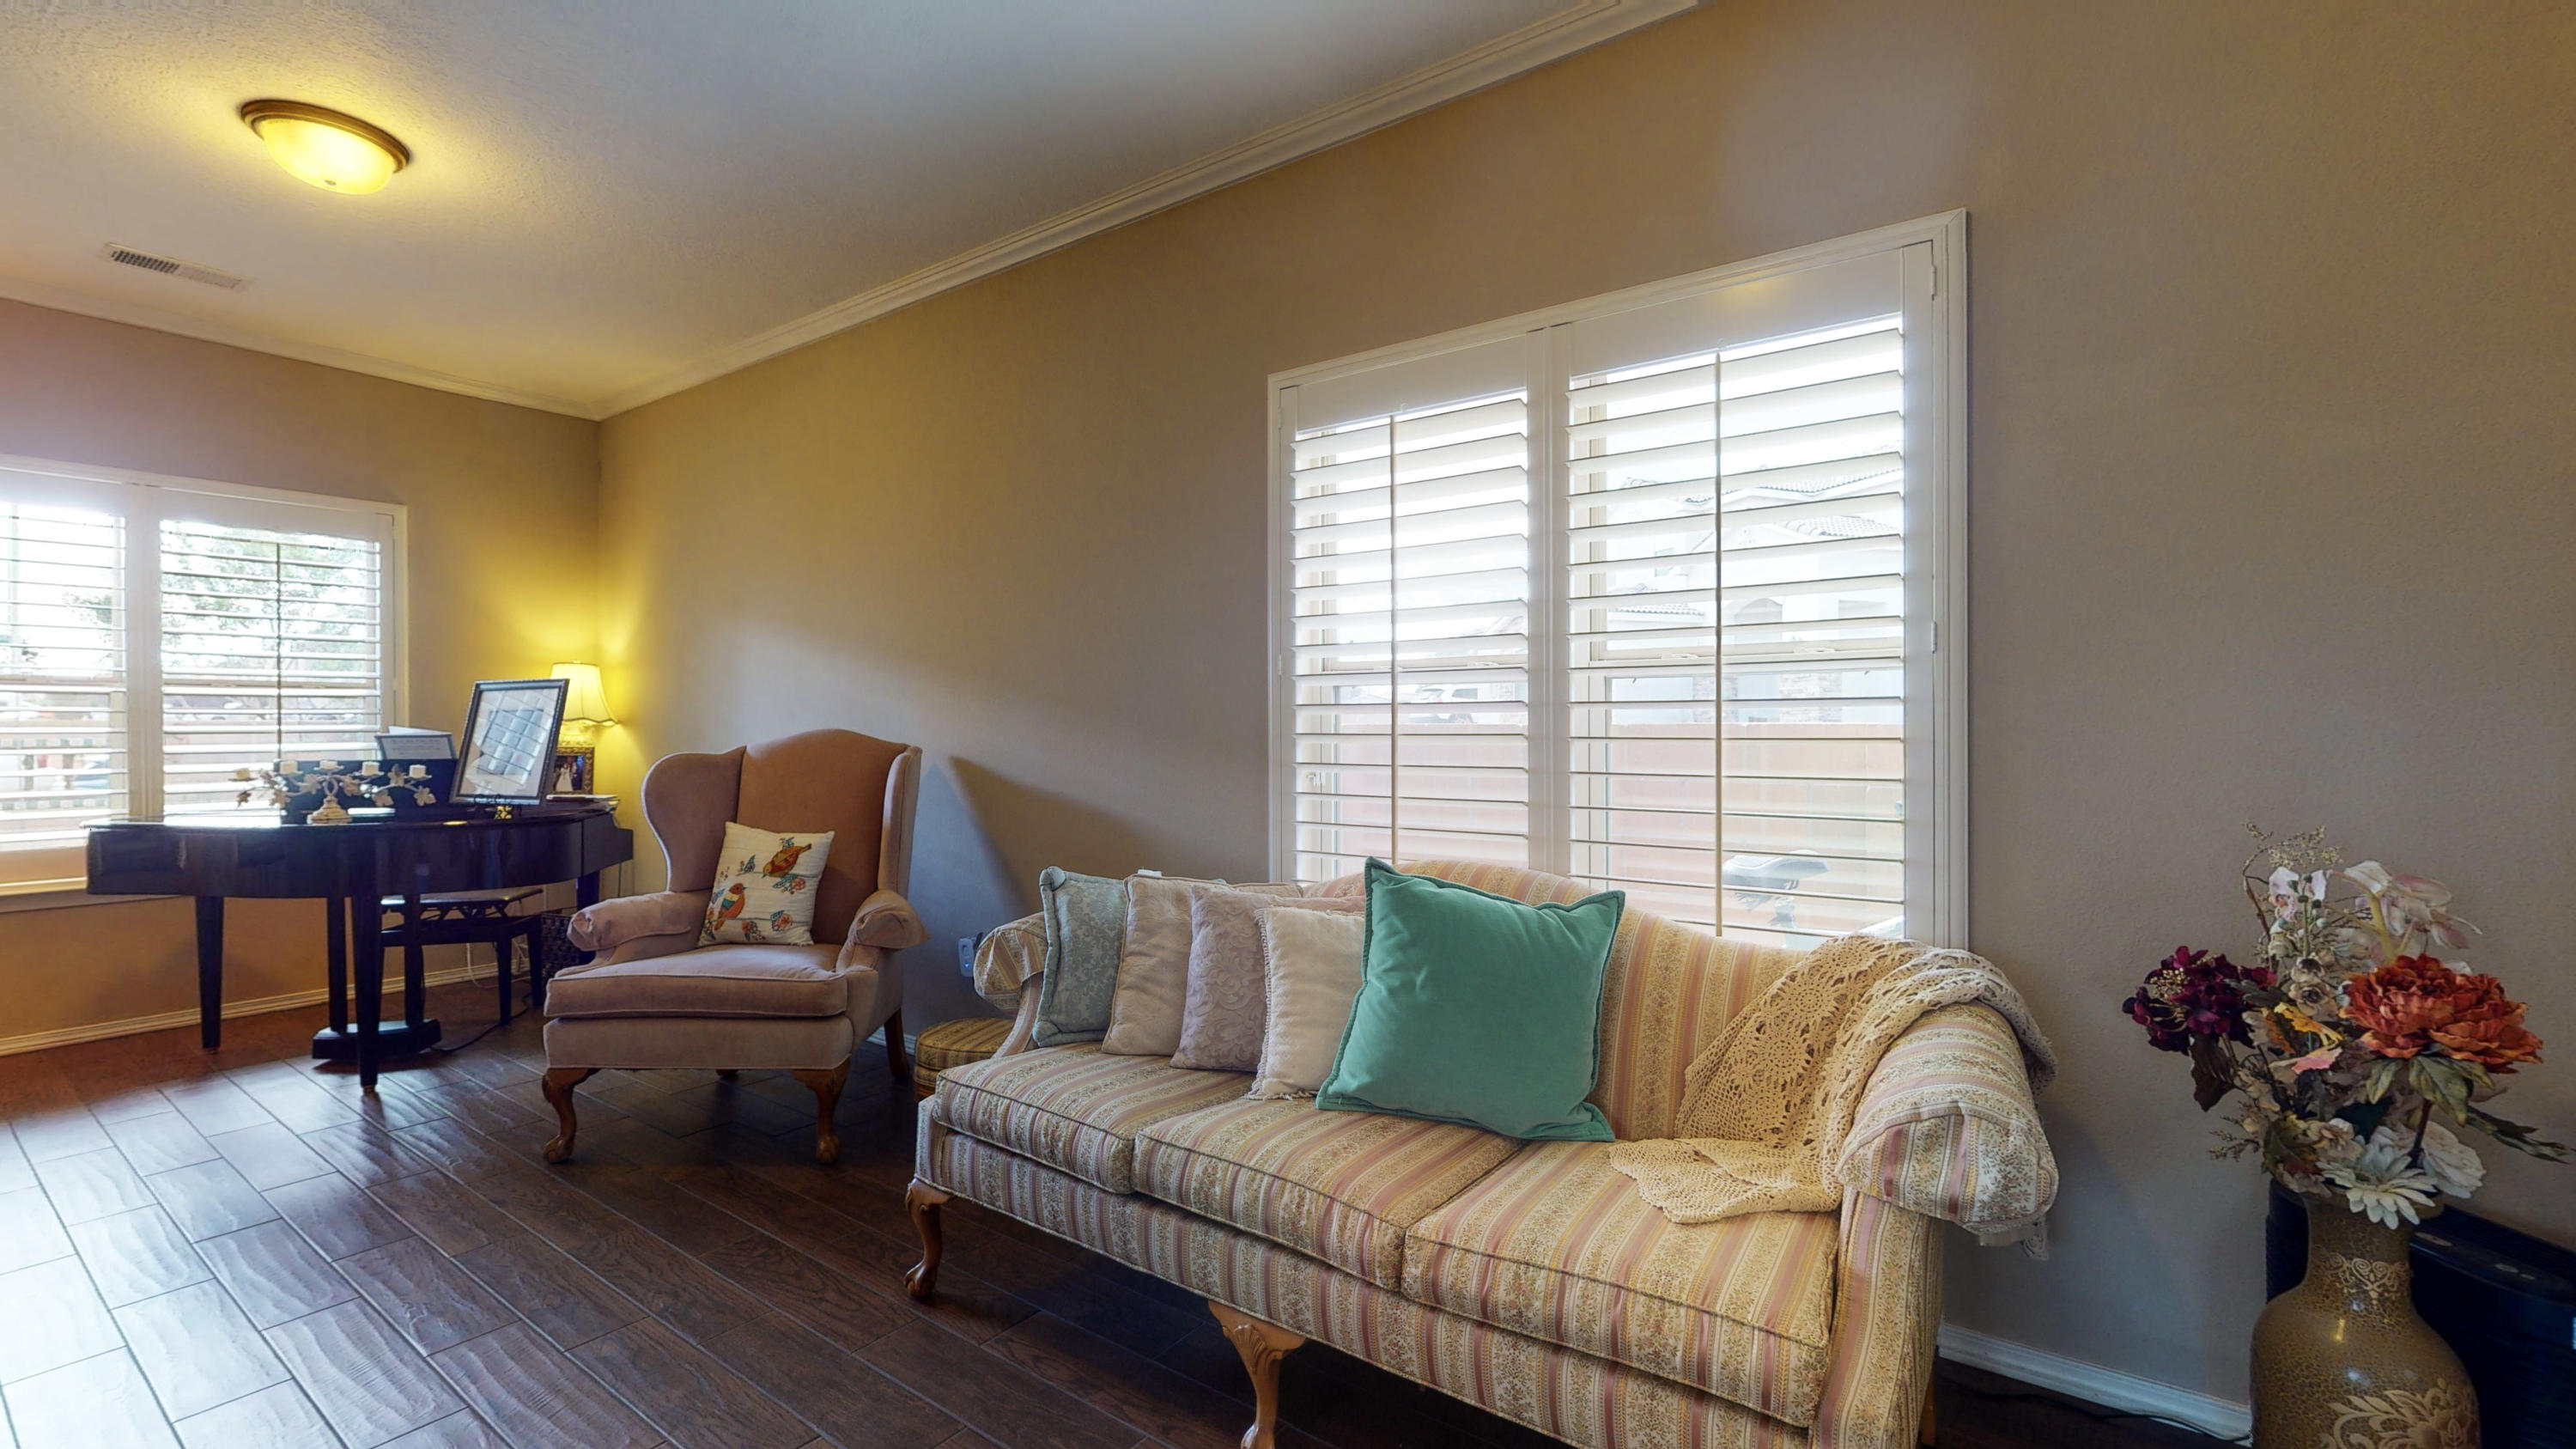 9720 BABY DEENA Street NW Property Photo - Albuquerque, NM real estate listing